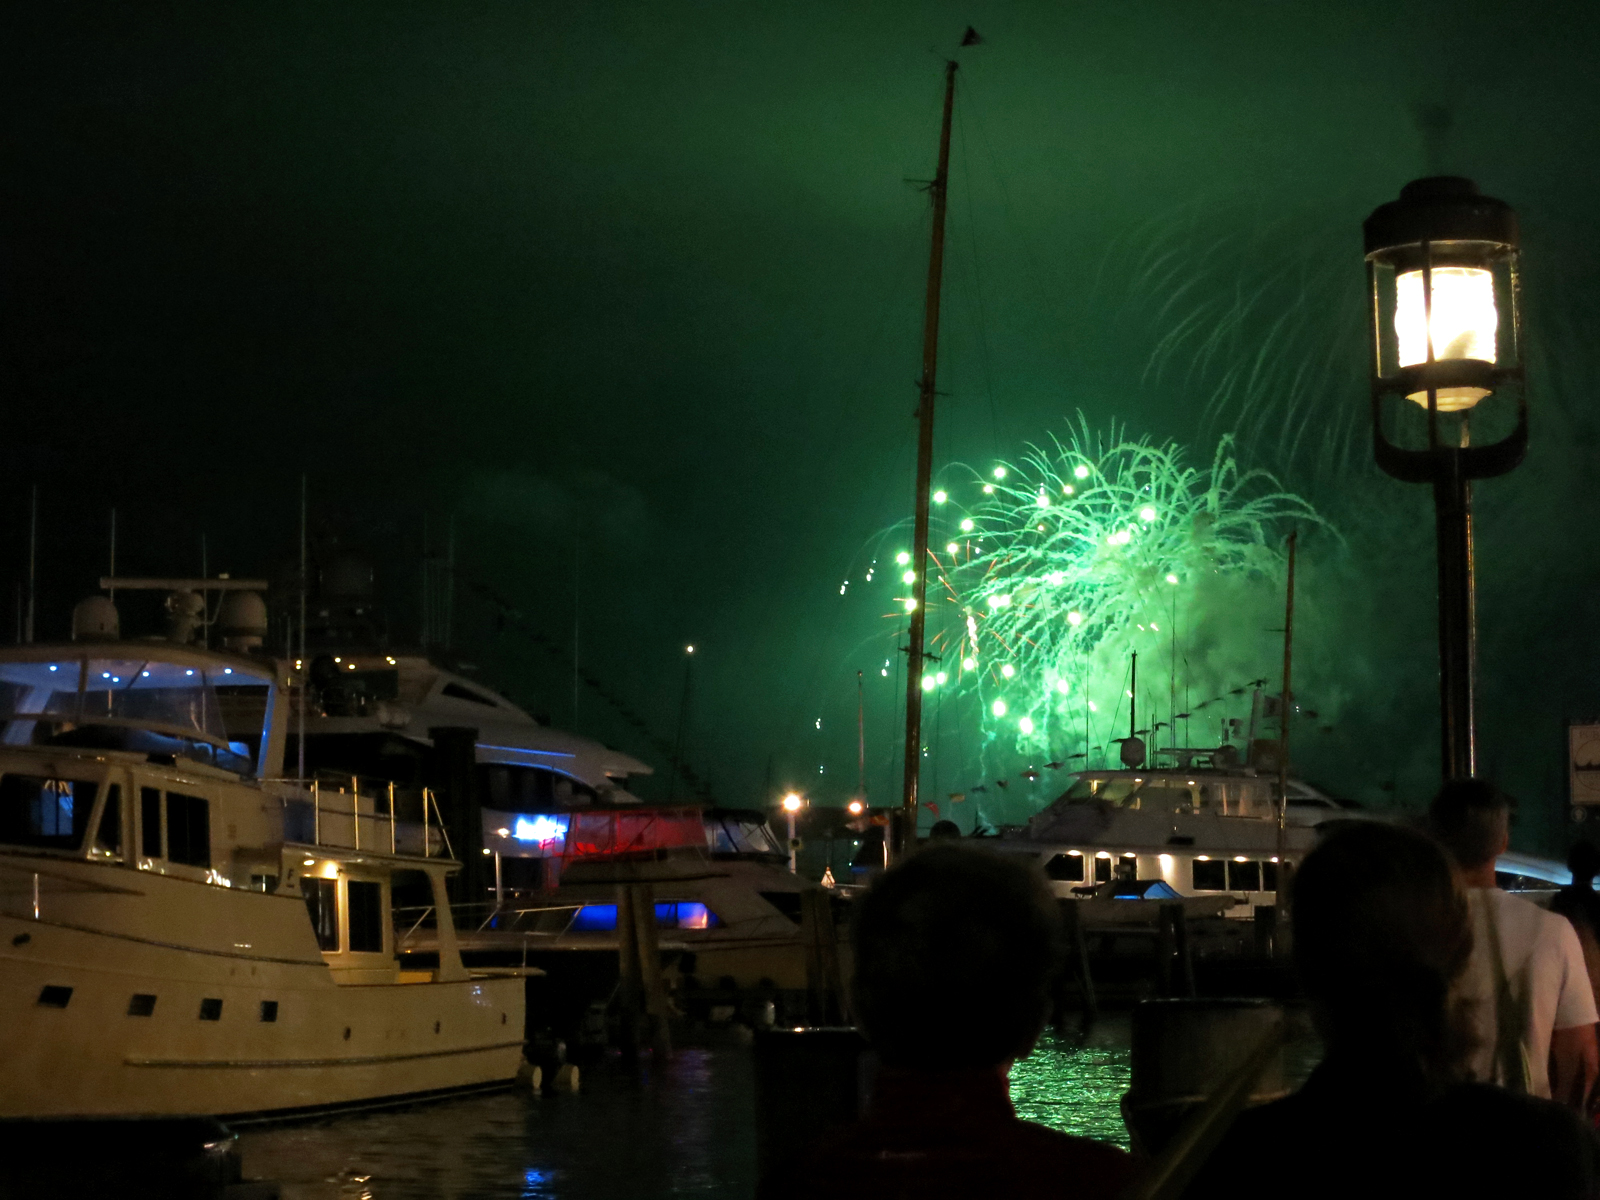 ROCKET'S RED GLARE OVER NEWPORT HARBOR - live. travel. adventure. bless. | Bright green firework exploding over the yachts in Newport Harbor during the 4th of July fireworks display in Newport, RI. Happy 4th of July!